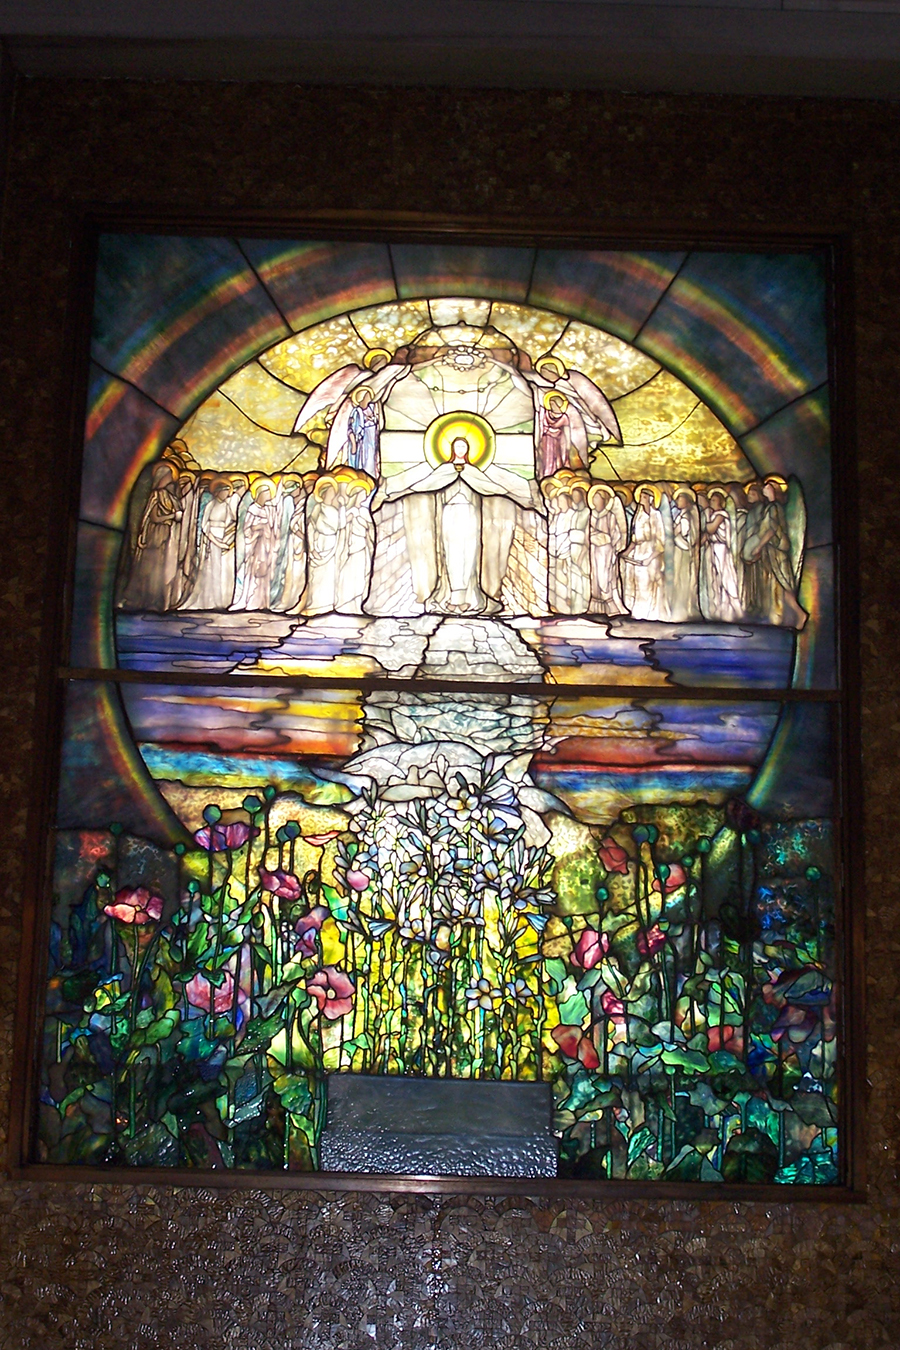 One of the Tiffany windows in the Wade Chapel in Lake View cemetery in Cleveland